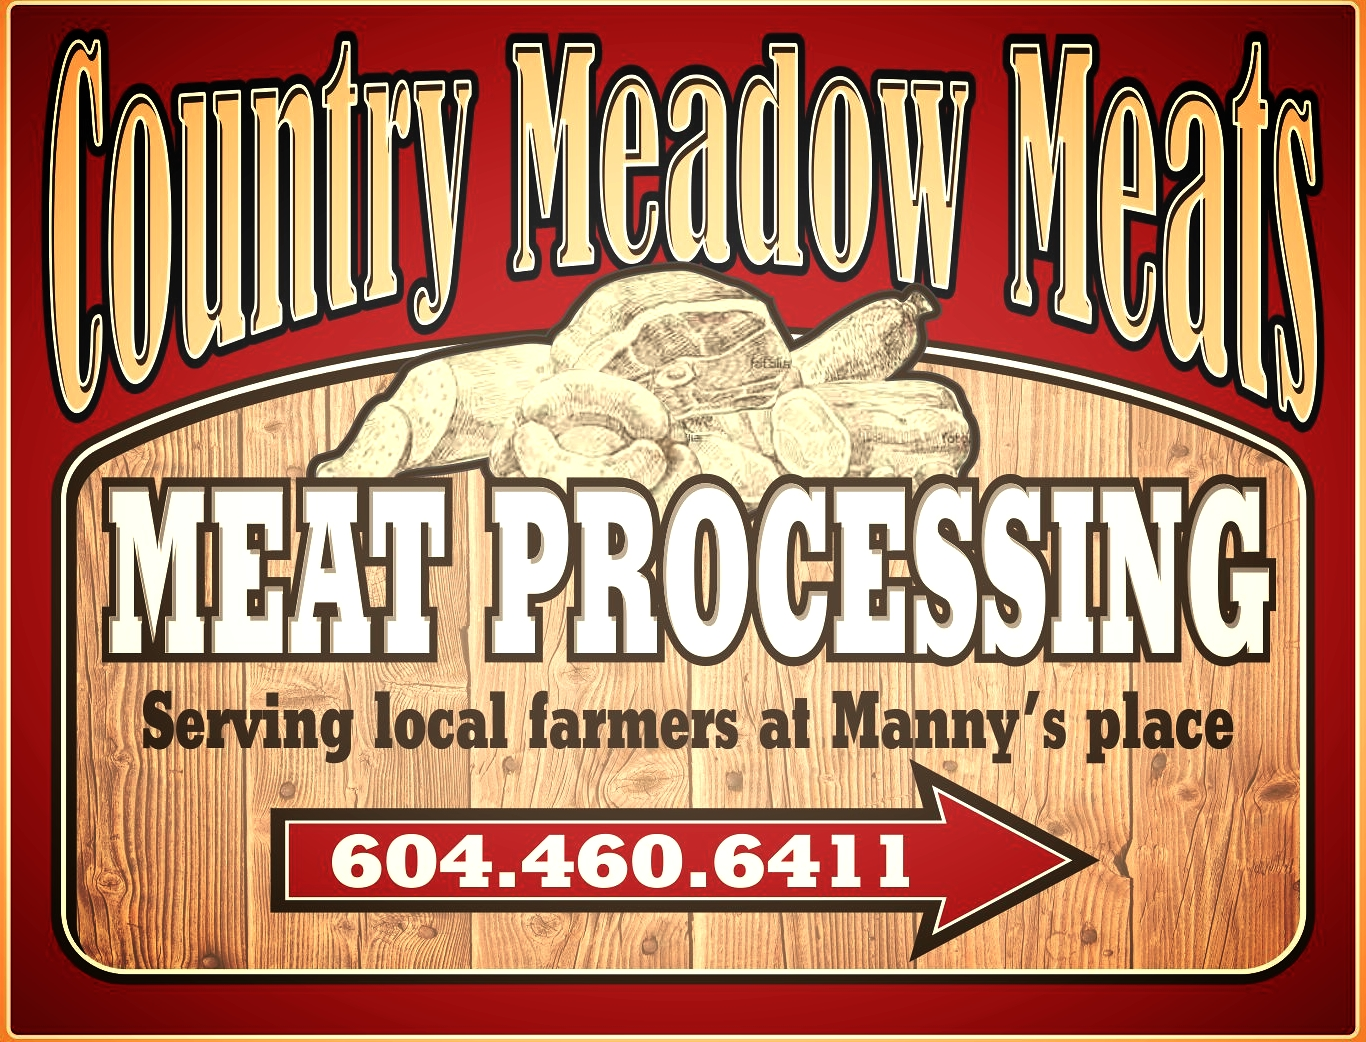 Country Meadow Meats